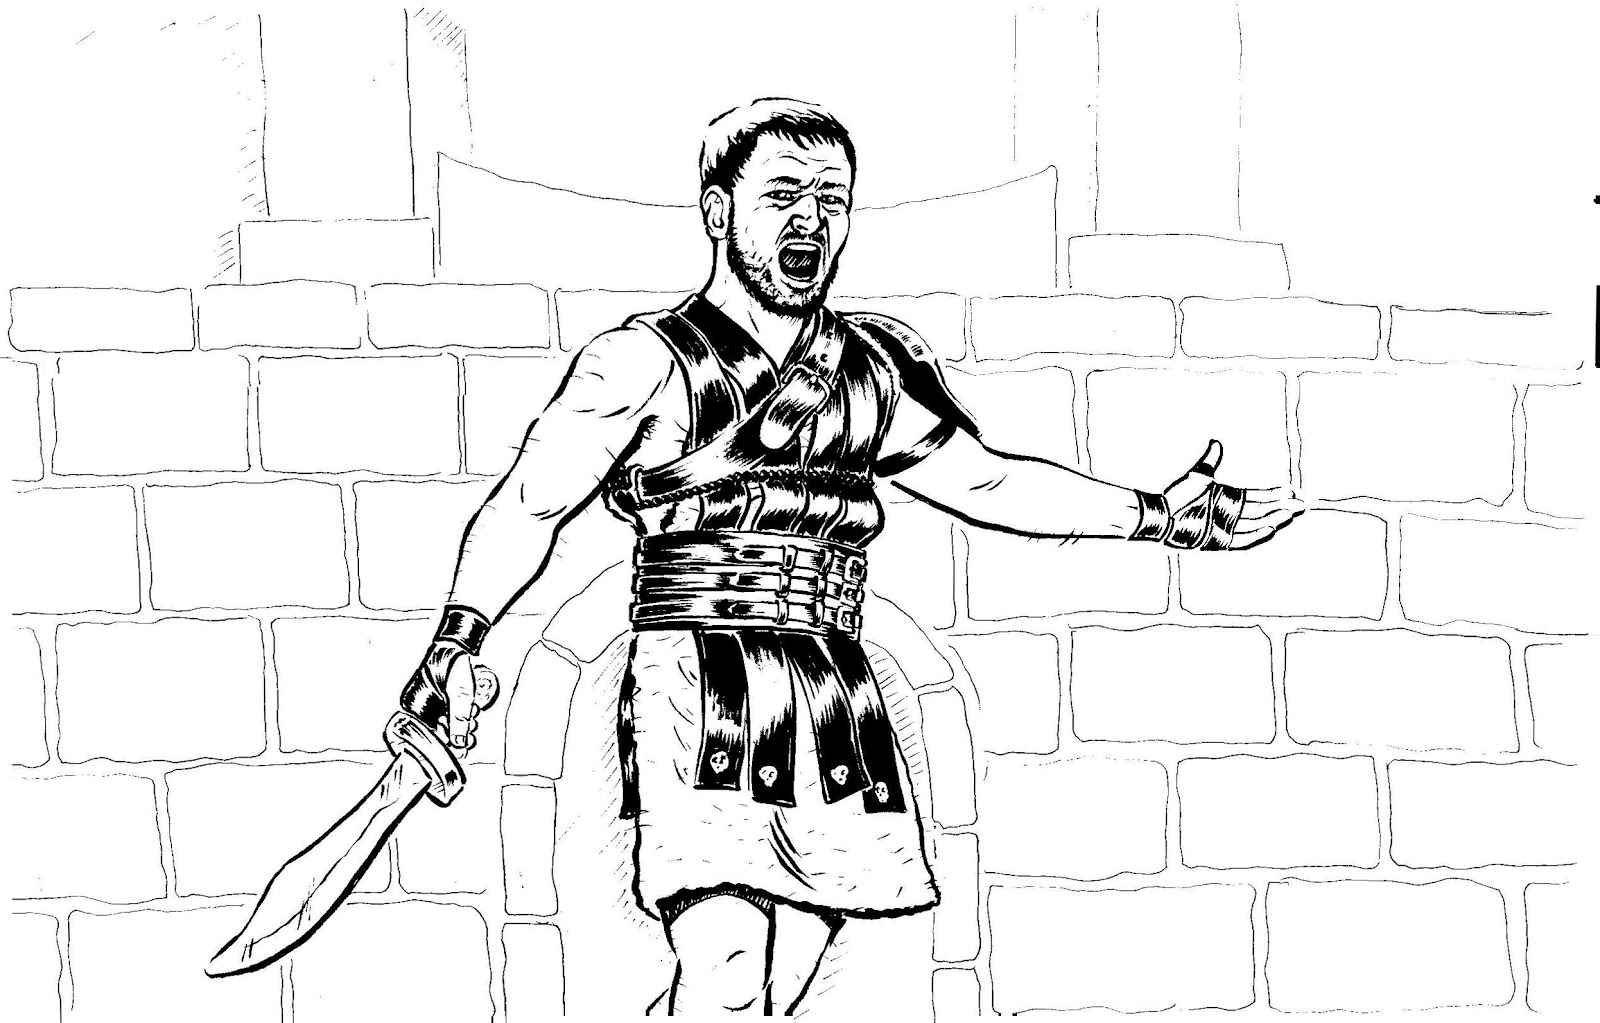 gladiator pictures to colour in rome gladiator coloring page wecoloringpagecom colour in to gladiator pictures